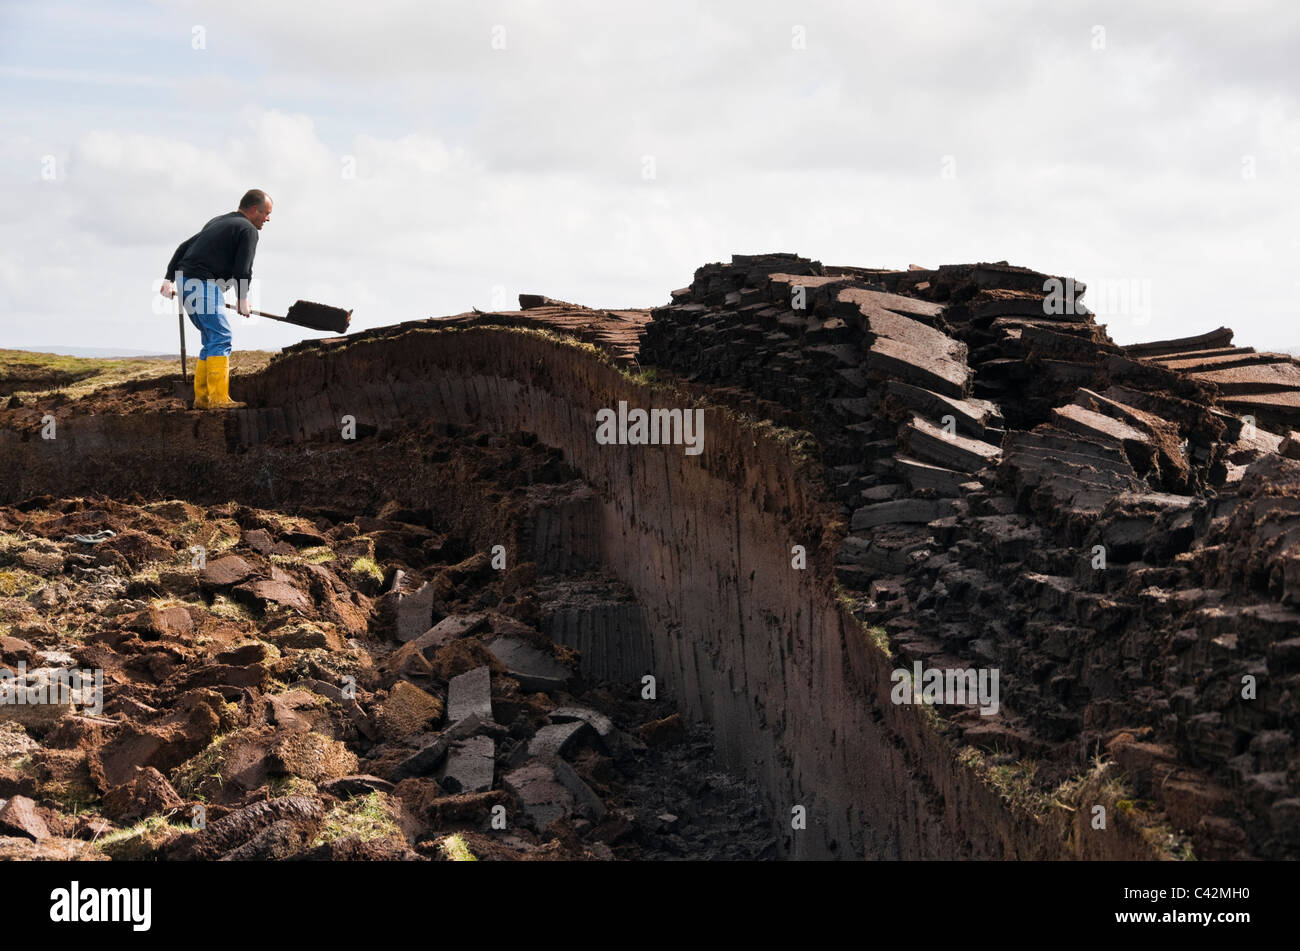 Man cutting peat blocks for traditional fuel on the Shetland Islands, Scotland, UK, Britain - Stock Image